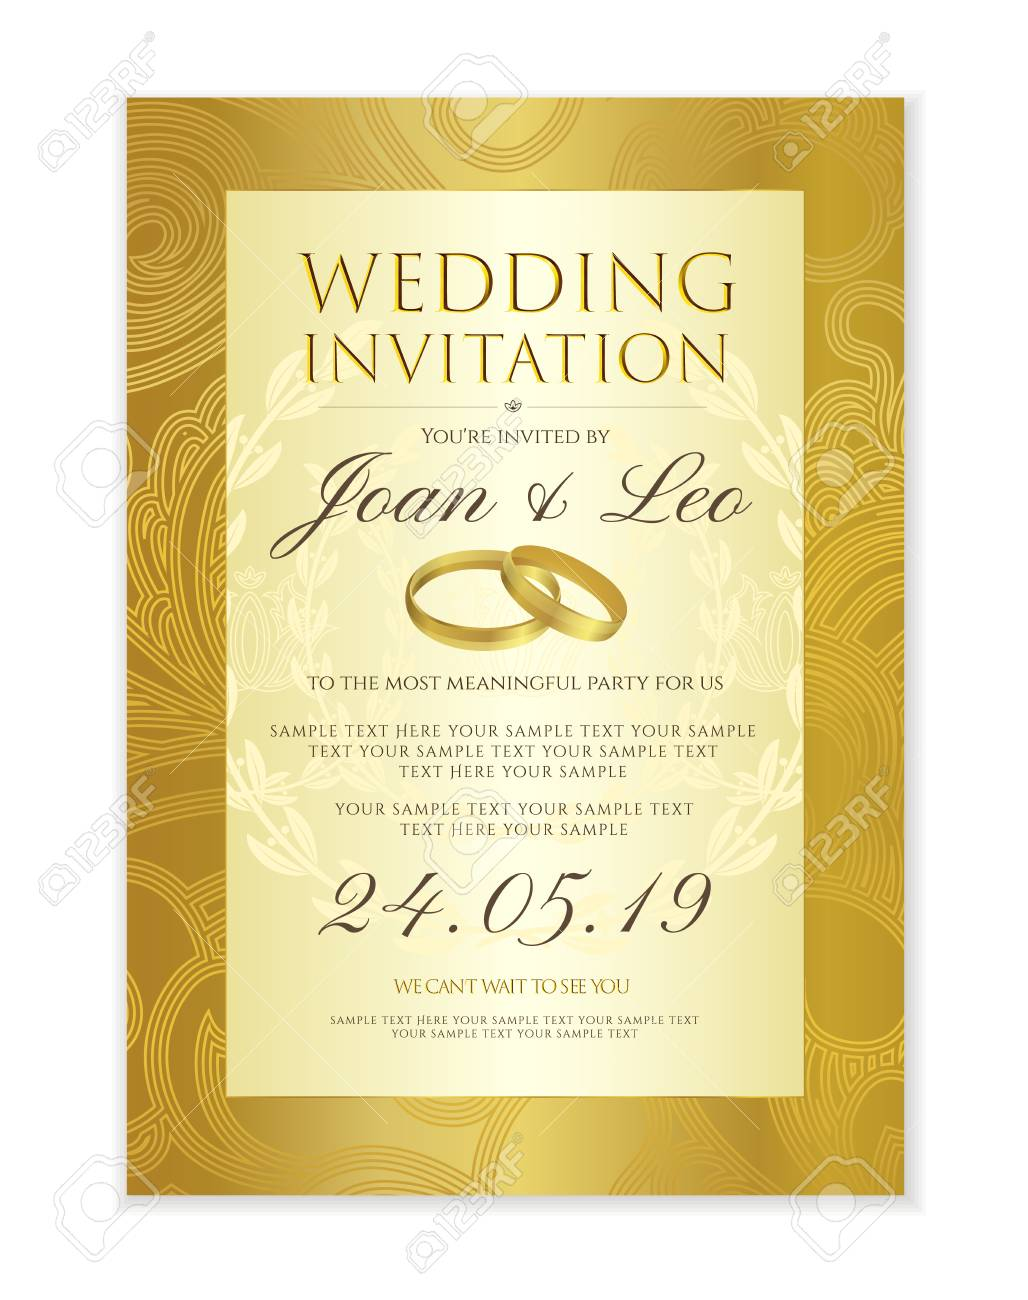 engagement invitation stock images royalty free images.html